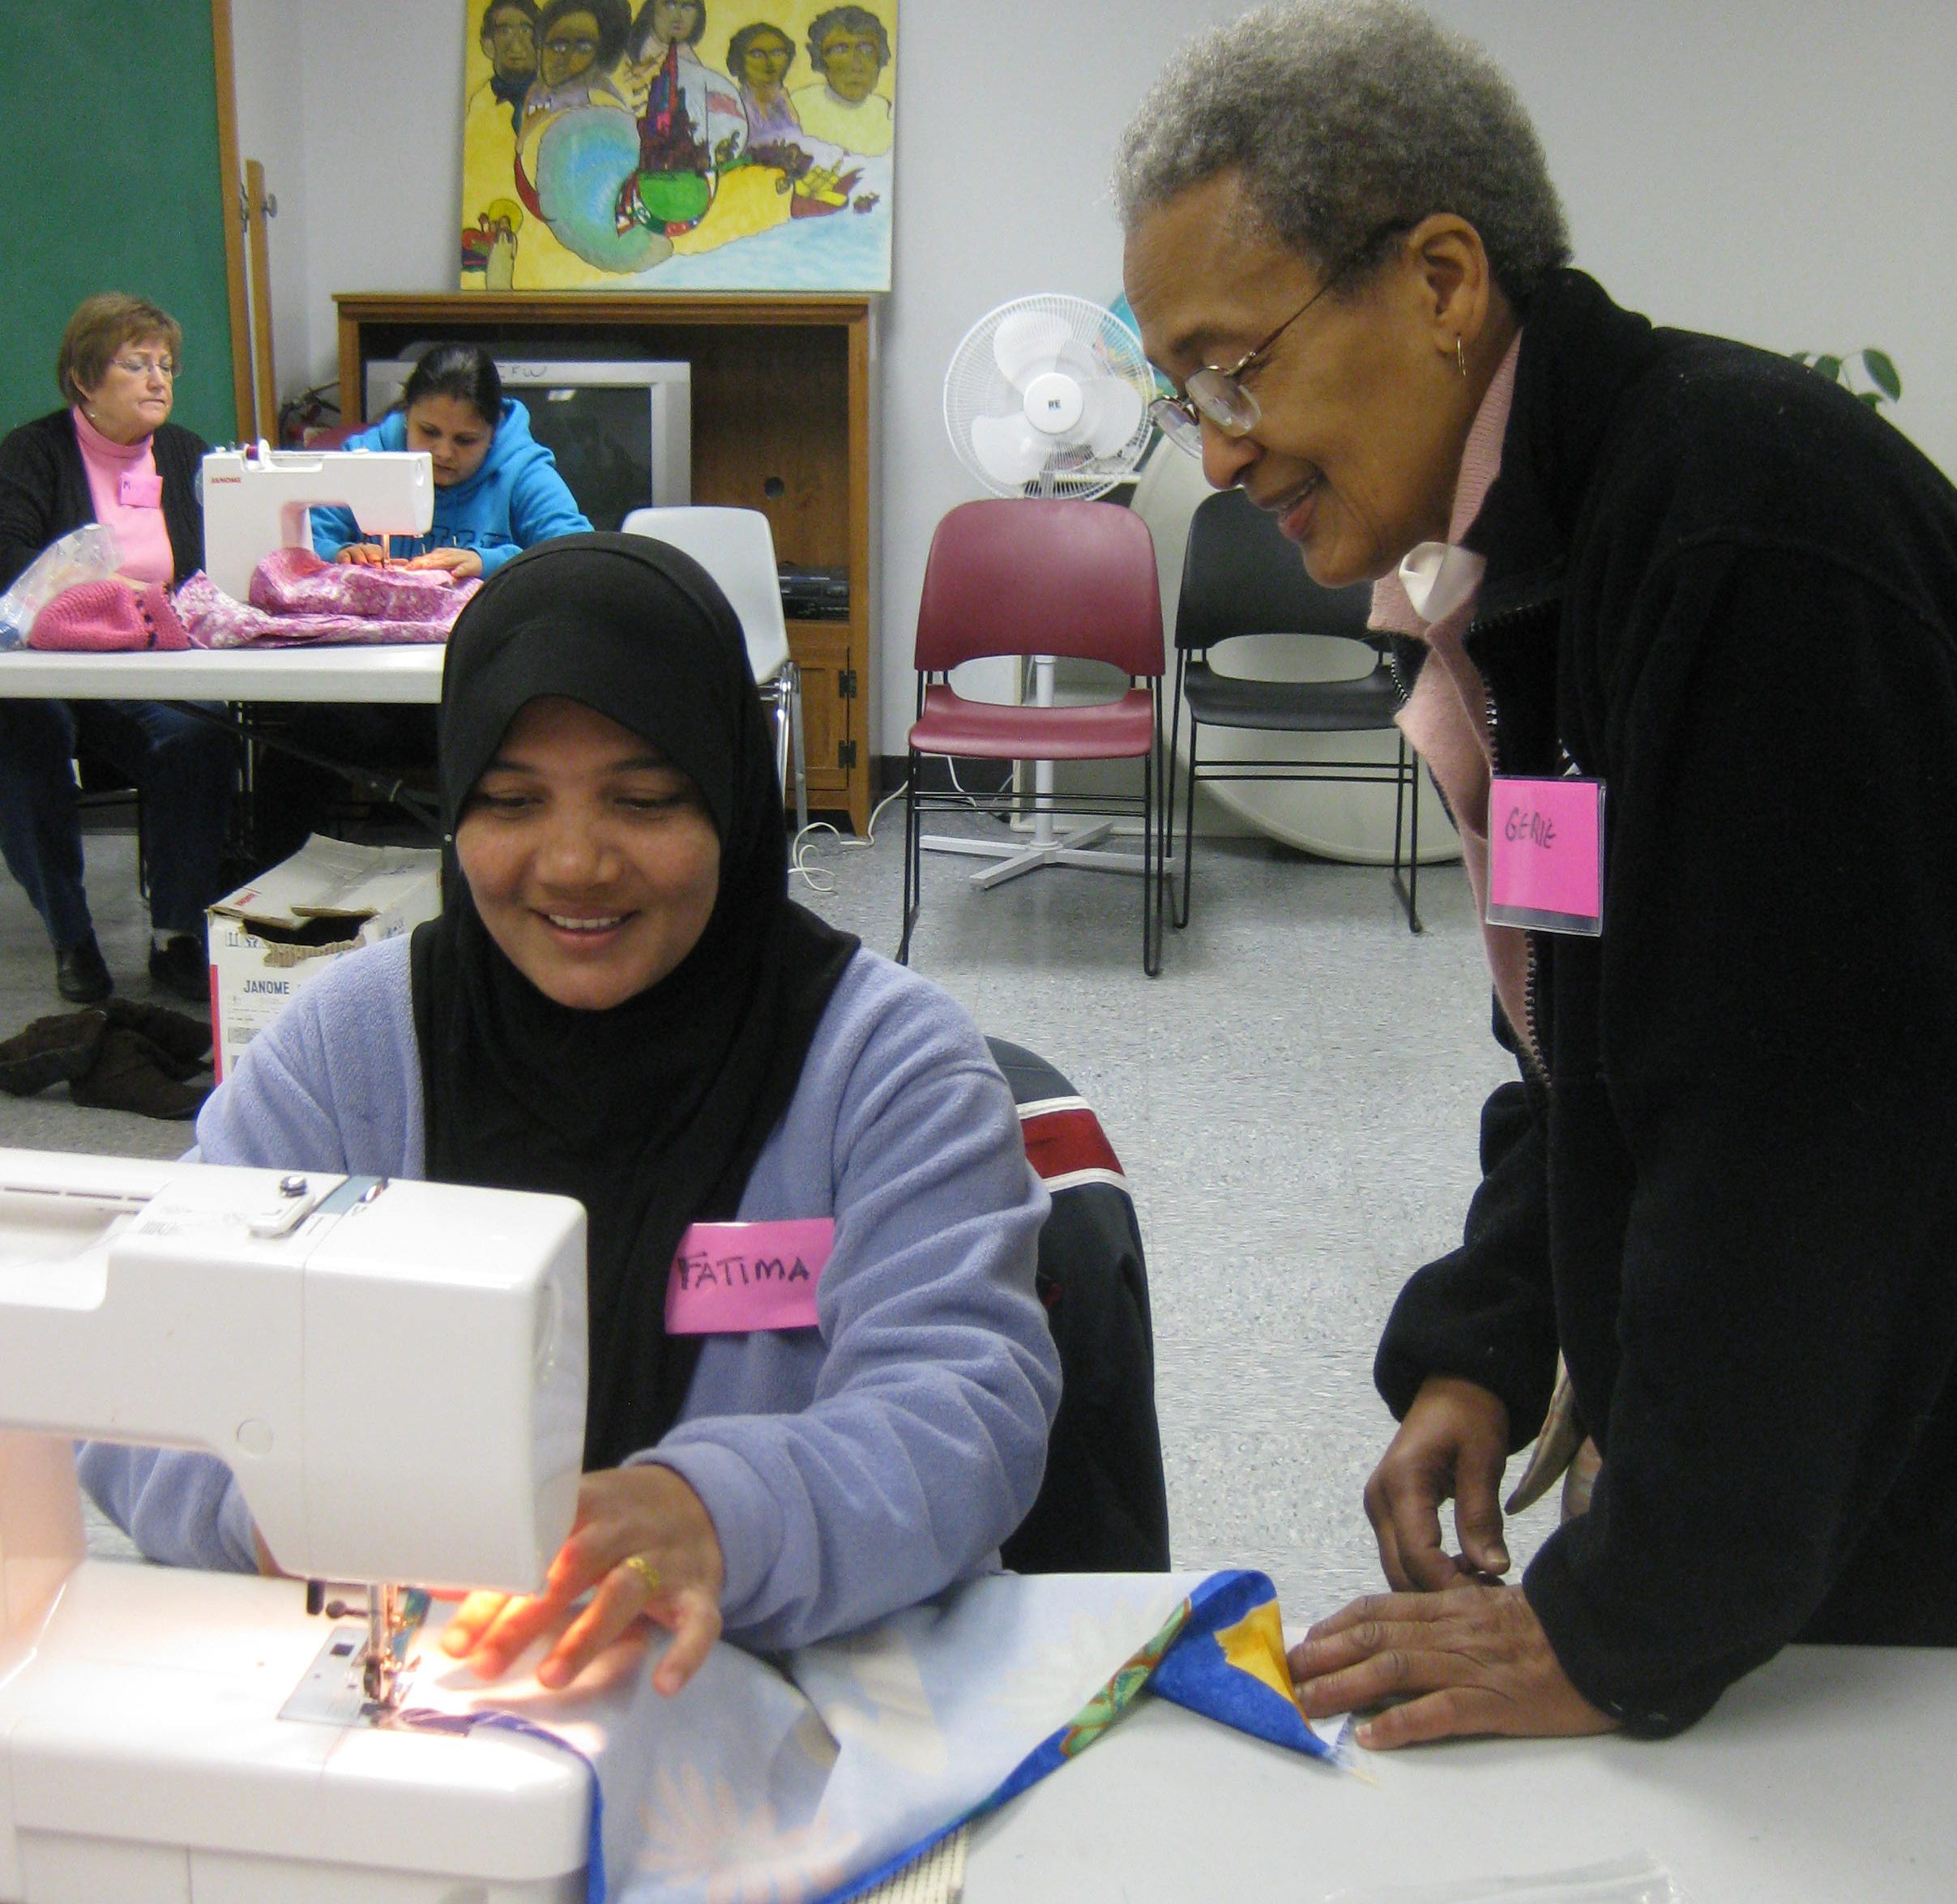 Sewing class - sewing a seam